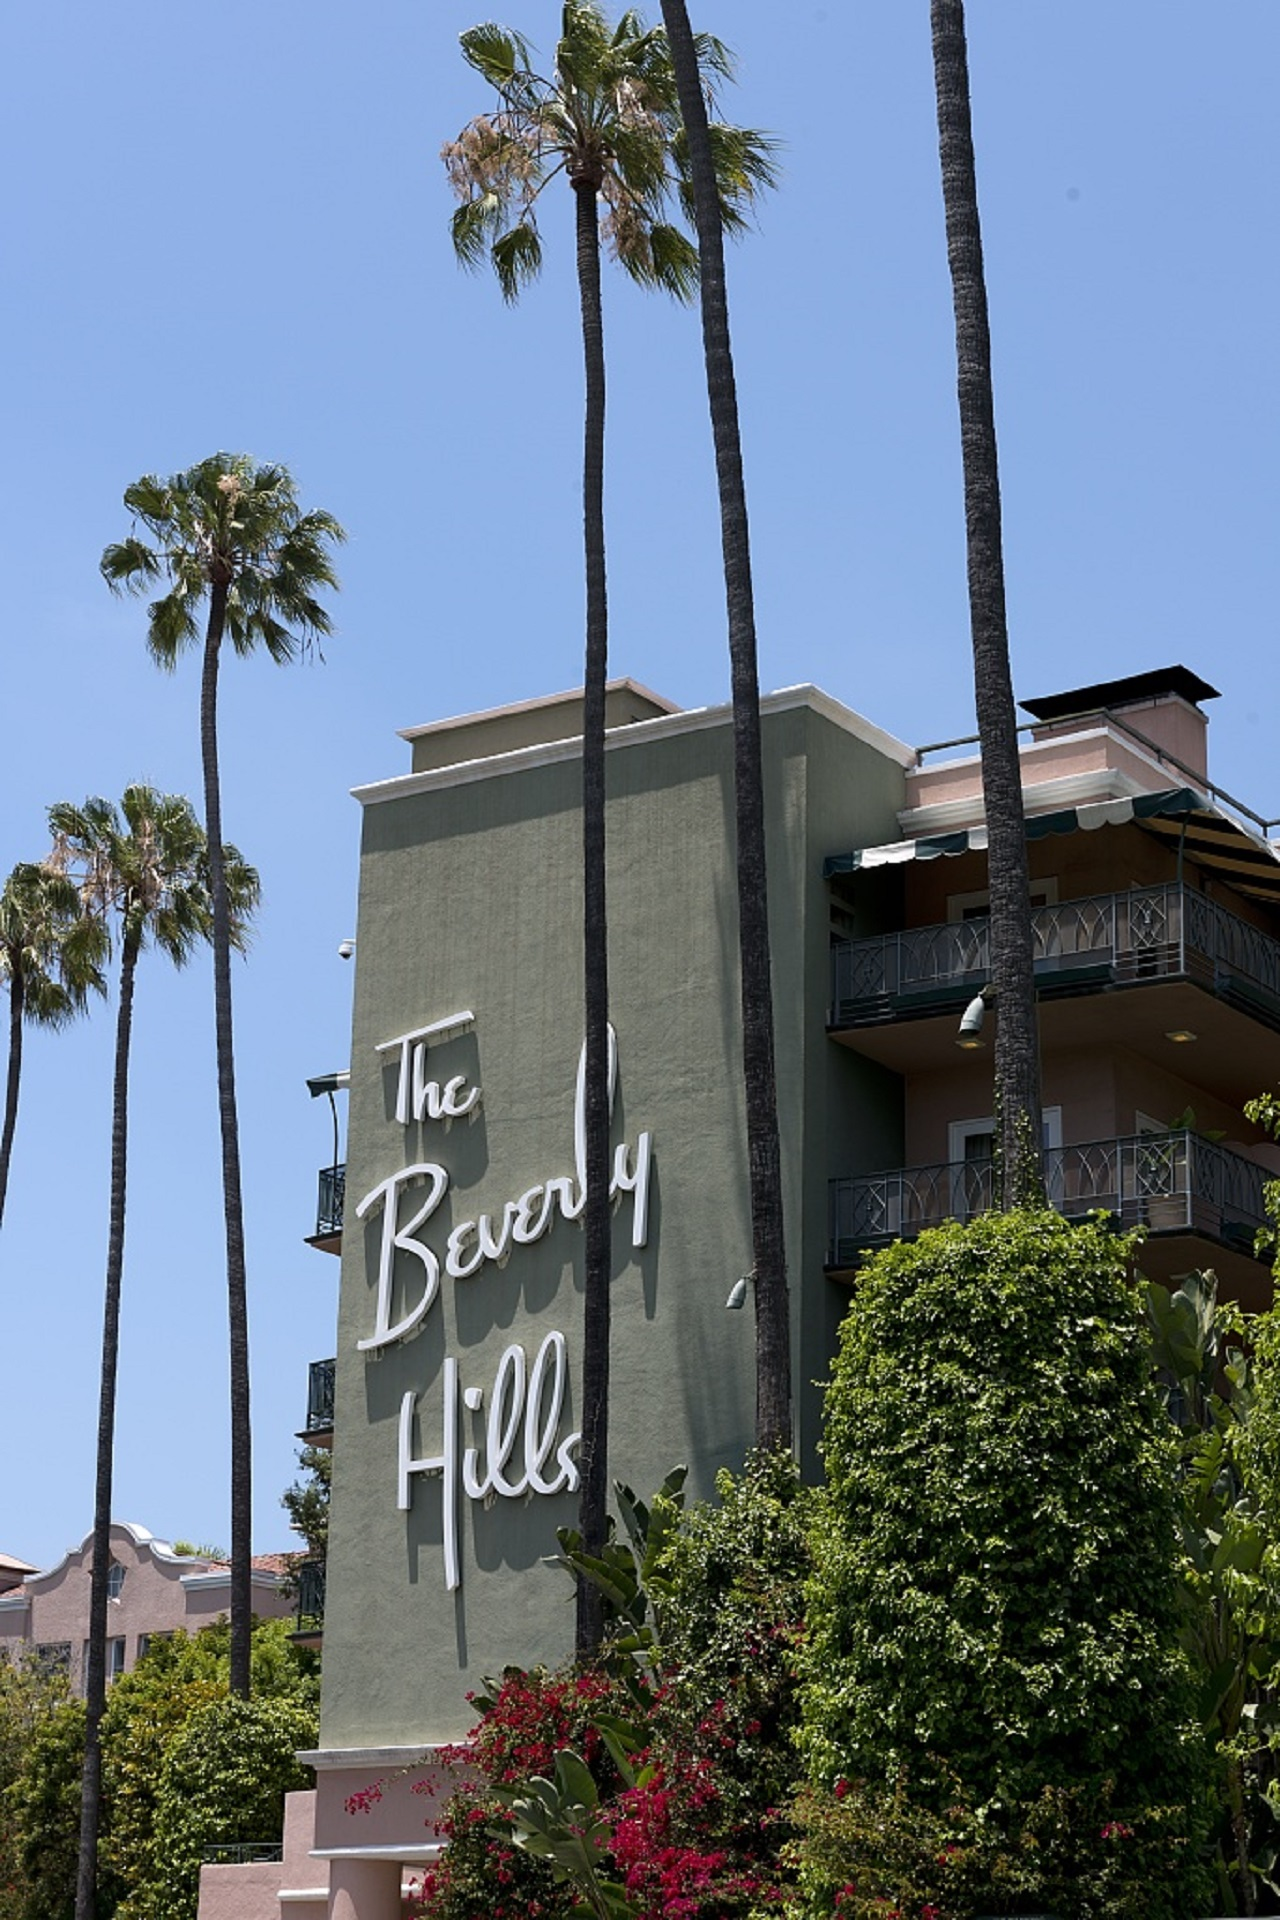 Beverly Hills. The name says it all. From world class dining and shopping to a white hot art and culture scene, Beverly Hills truly has everything. Let me help you find your movie star lifestyle in the most glamorous town in America.